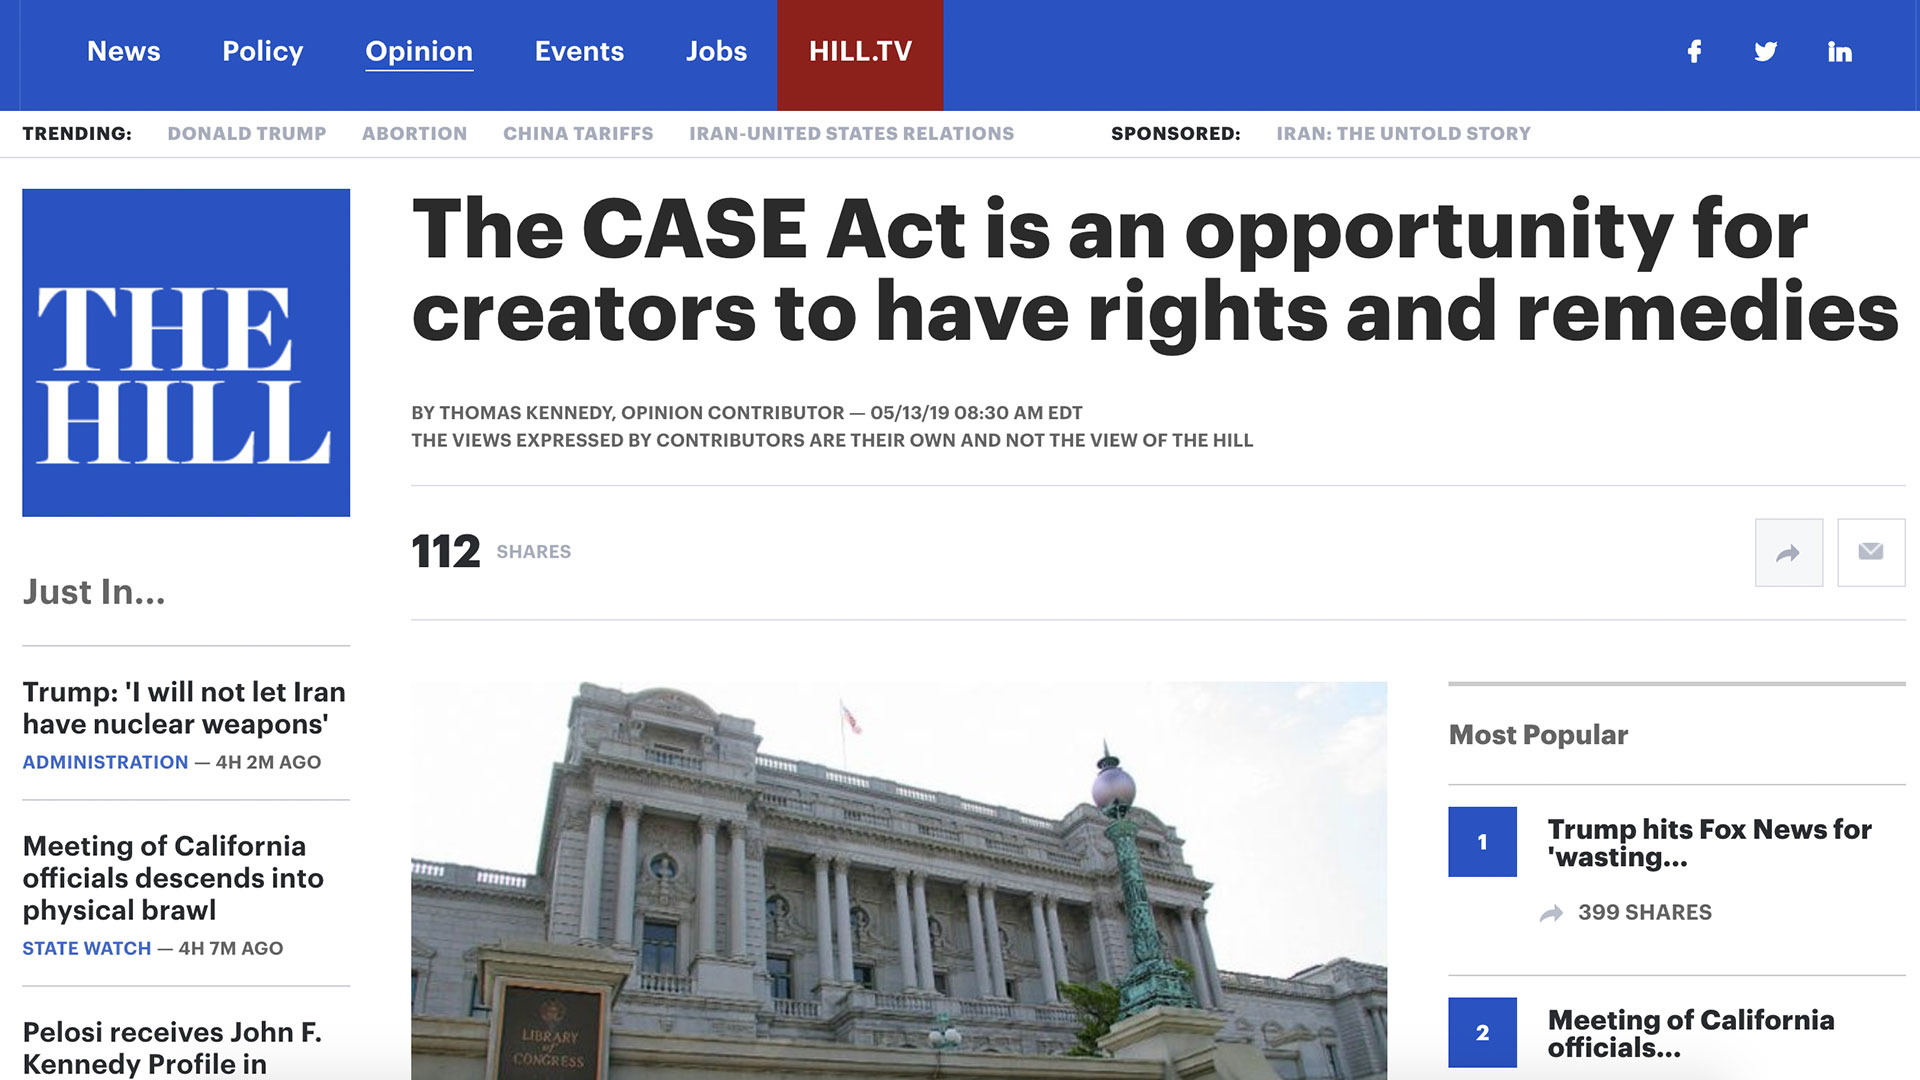 Fairness Rocks News The CASE Act is an opportunity for creators to have rights and remedies